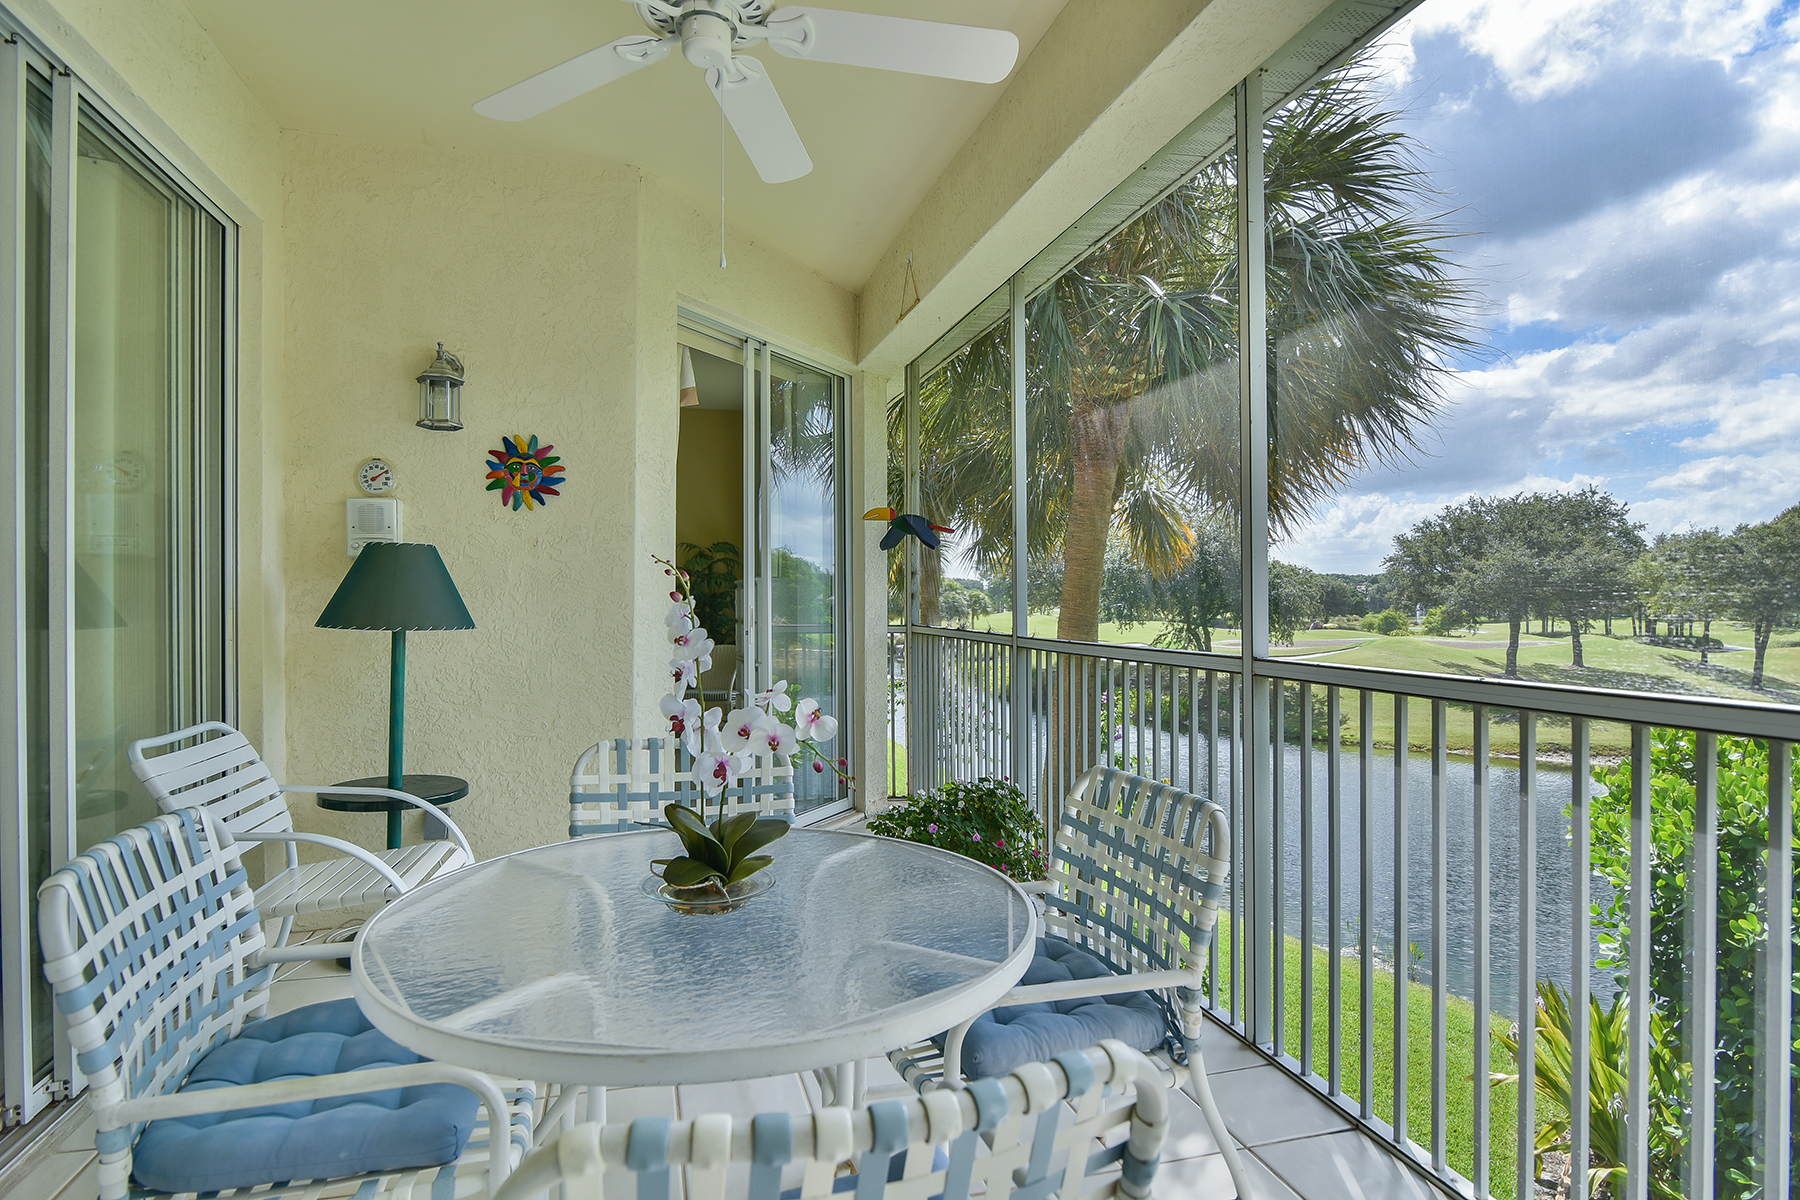 Condominium for Sale at 2110 Arielle Dr , 101, Naples, FL 34109 2110 Arielle Dr 101 Naples, Florida, 34109 United States